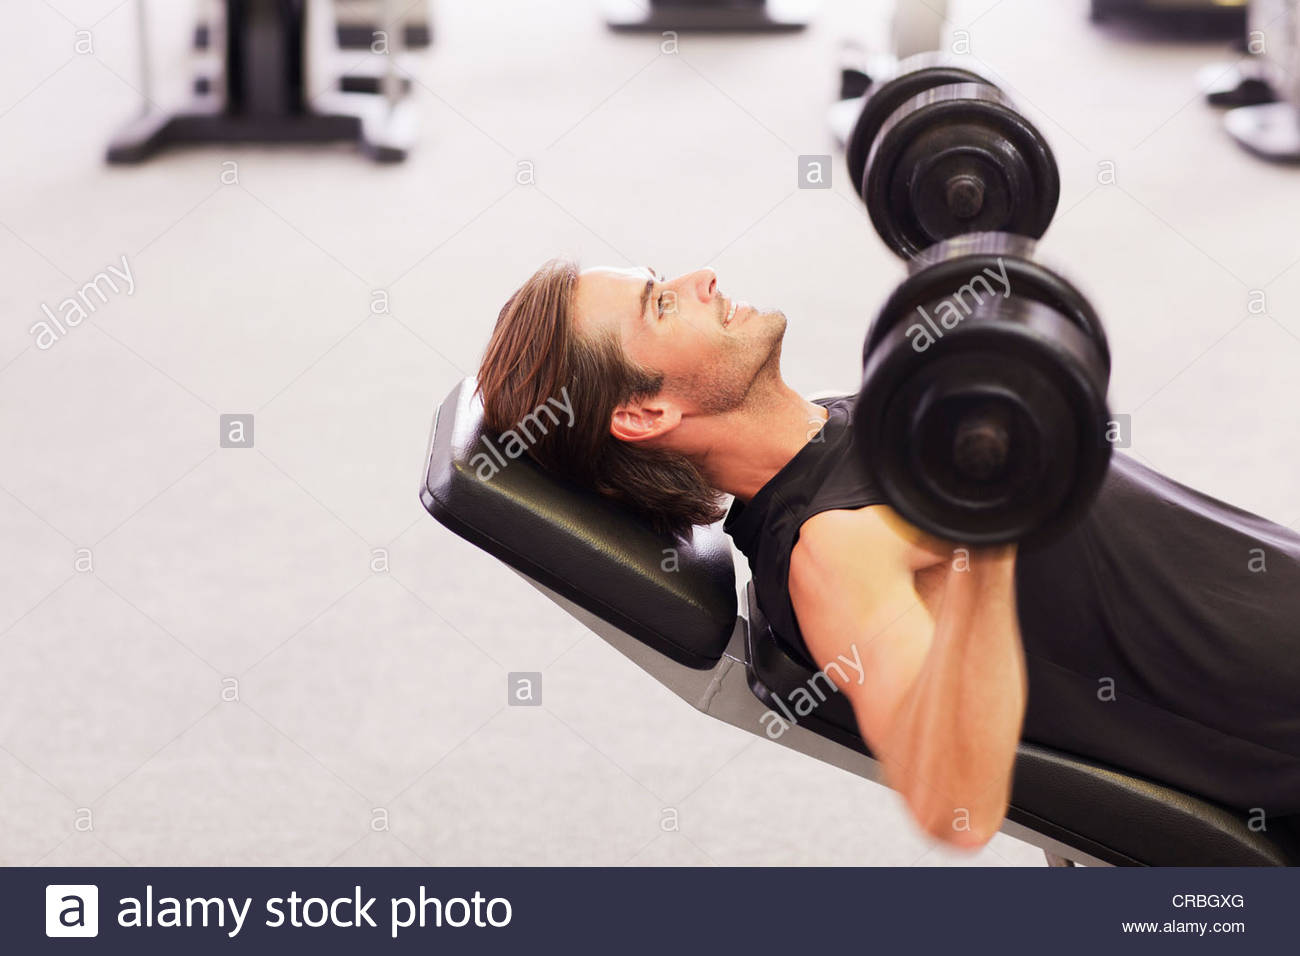 Man doing incline chest presses with dumbbells in gymnasium - Stock Image